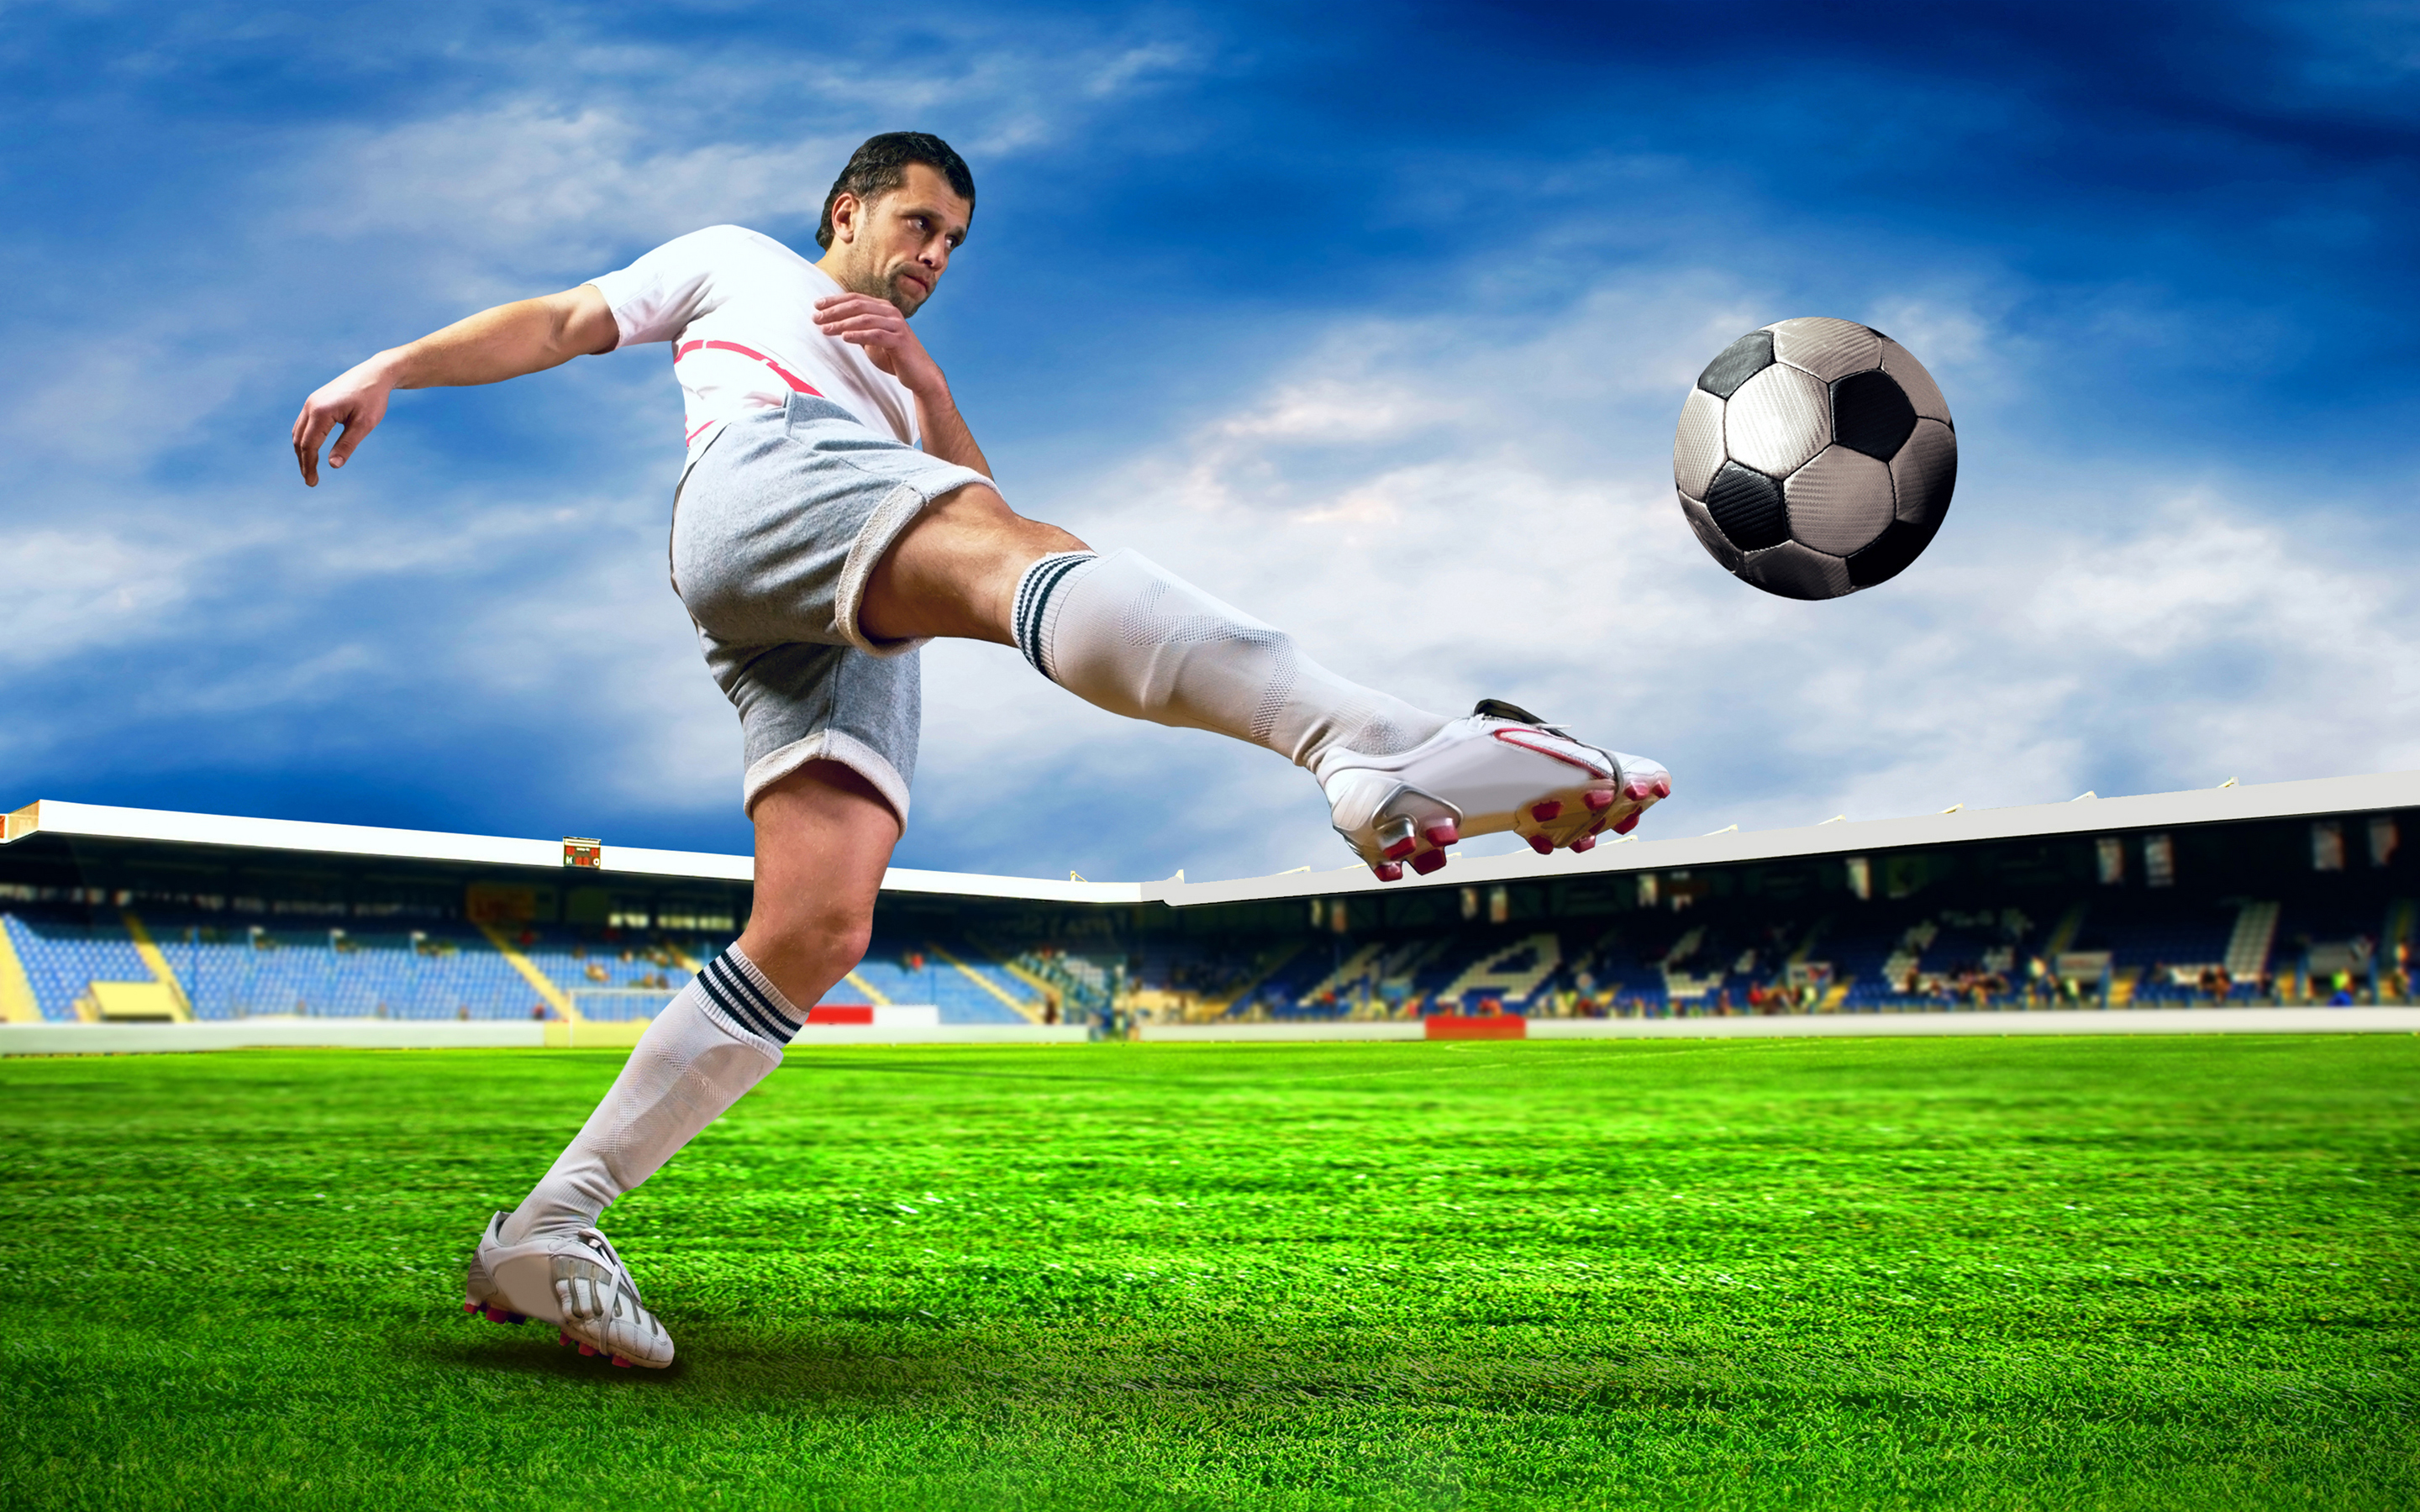 Soccer Full HD Wallpaper and Background Image | 2880x1800 ...